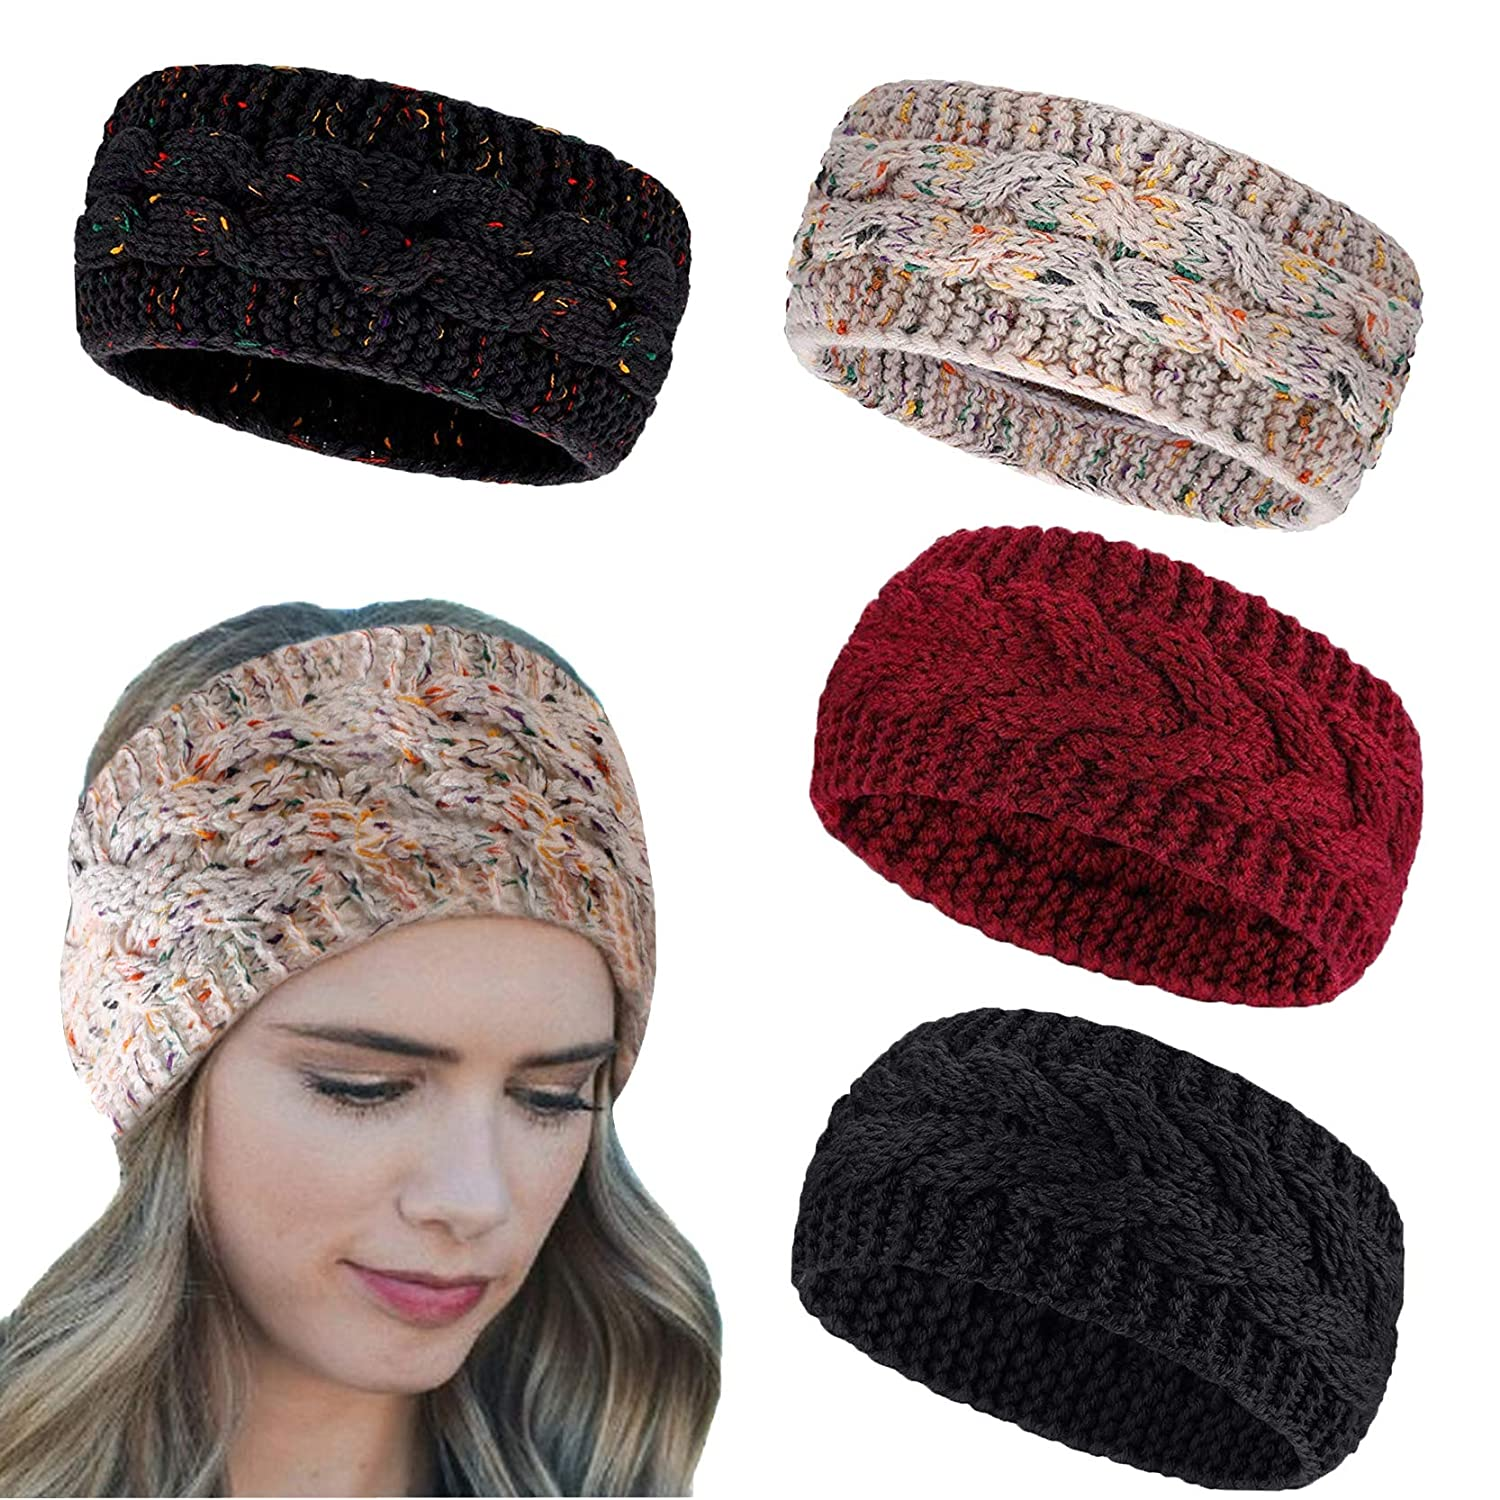 25% OFF Special price Qian Yang 4 Pack Women Winter Stretch Headband Cable Chunky Knit